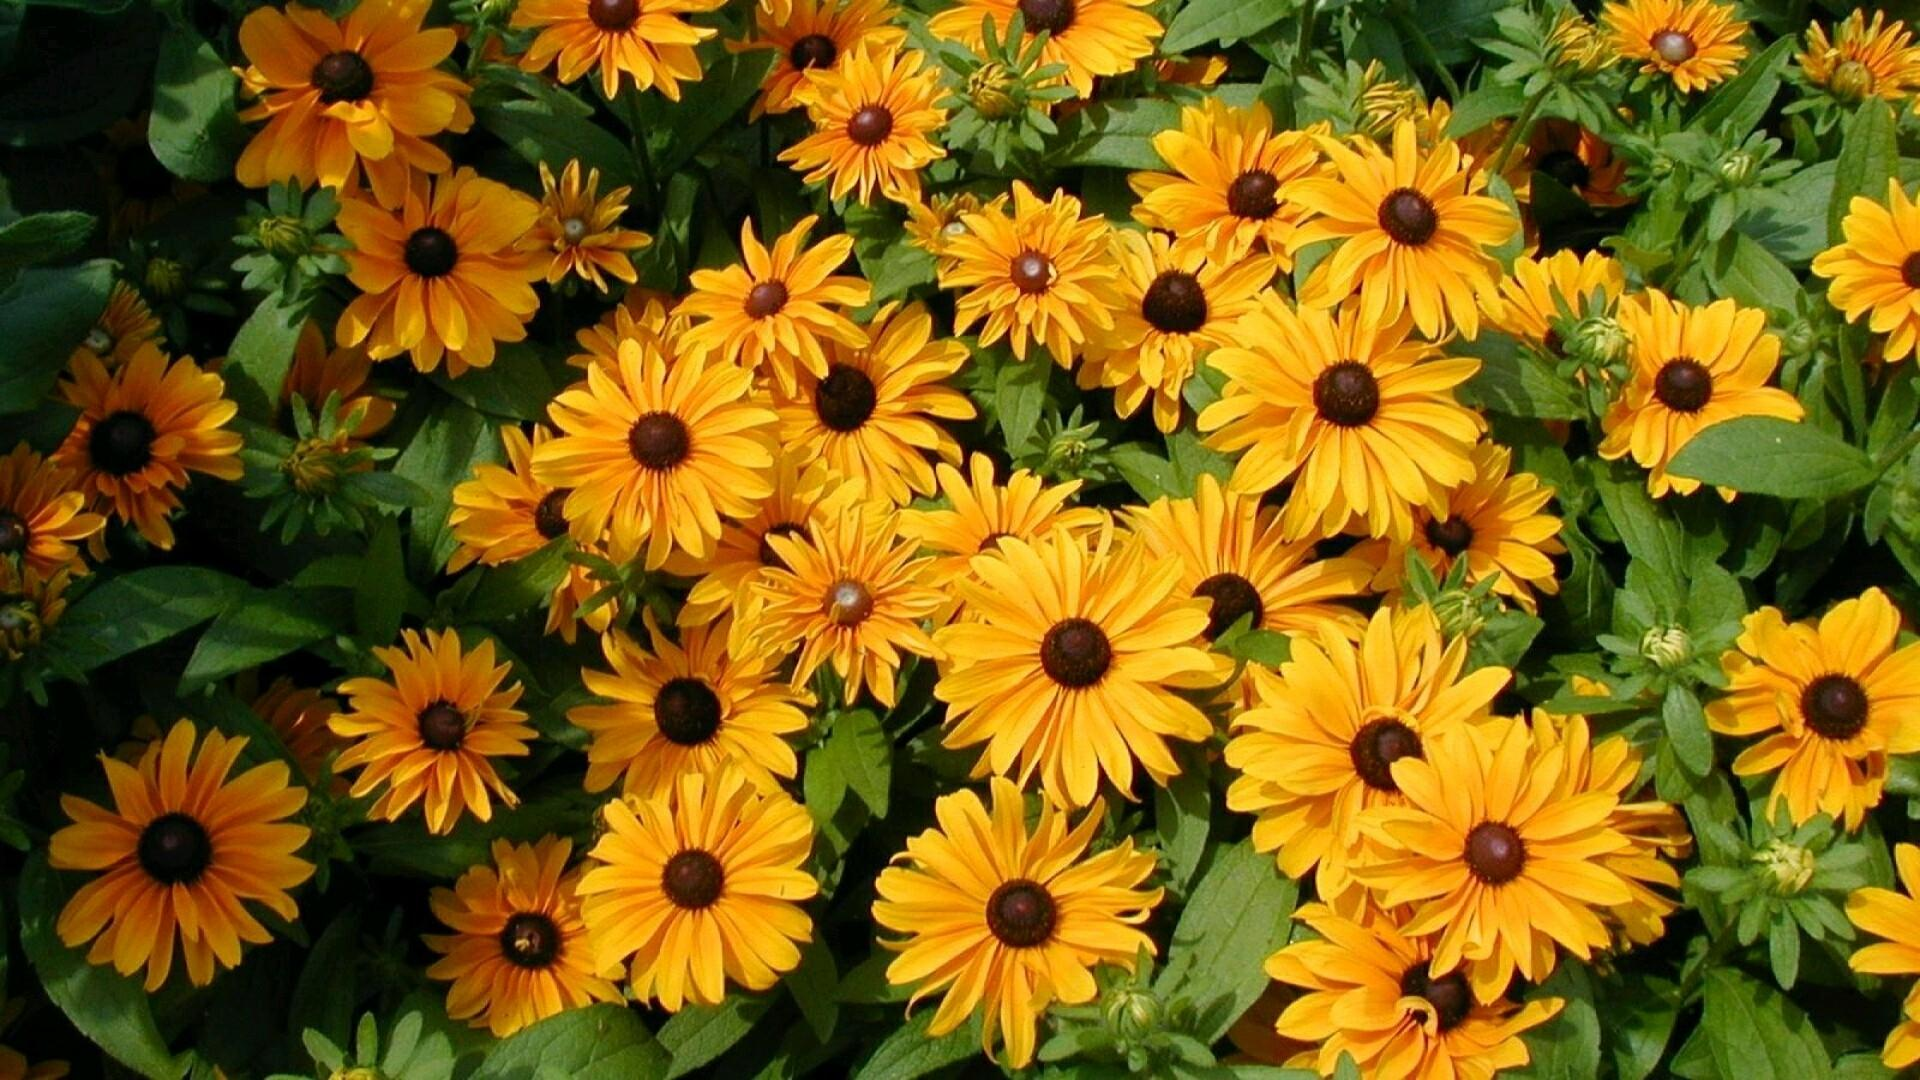 Black Eyed Susan Wallpaper Hd Download